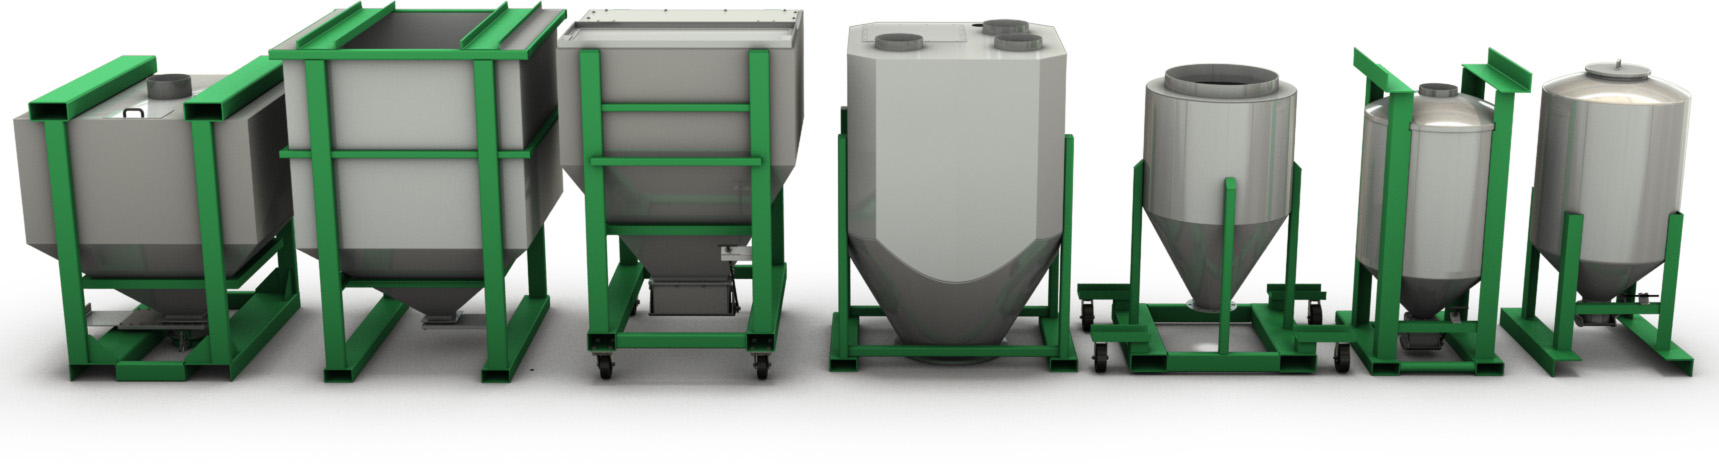 Portable Bin and Tote Lineup